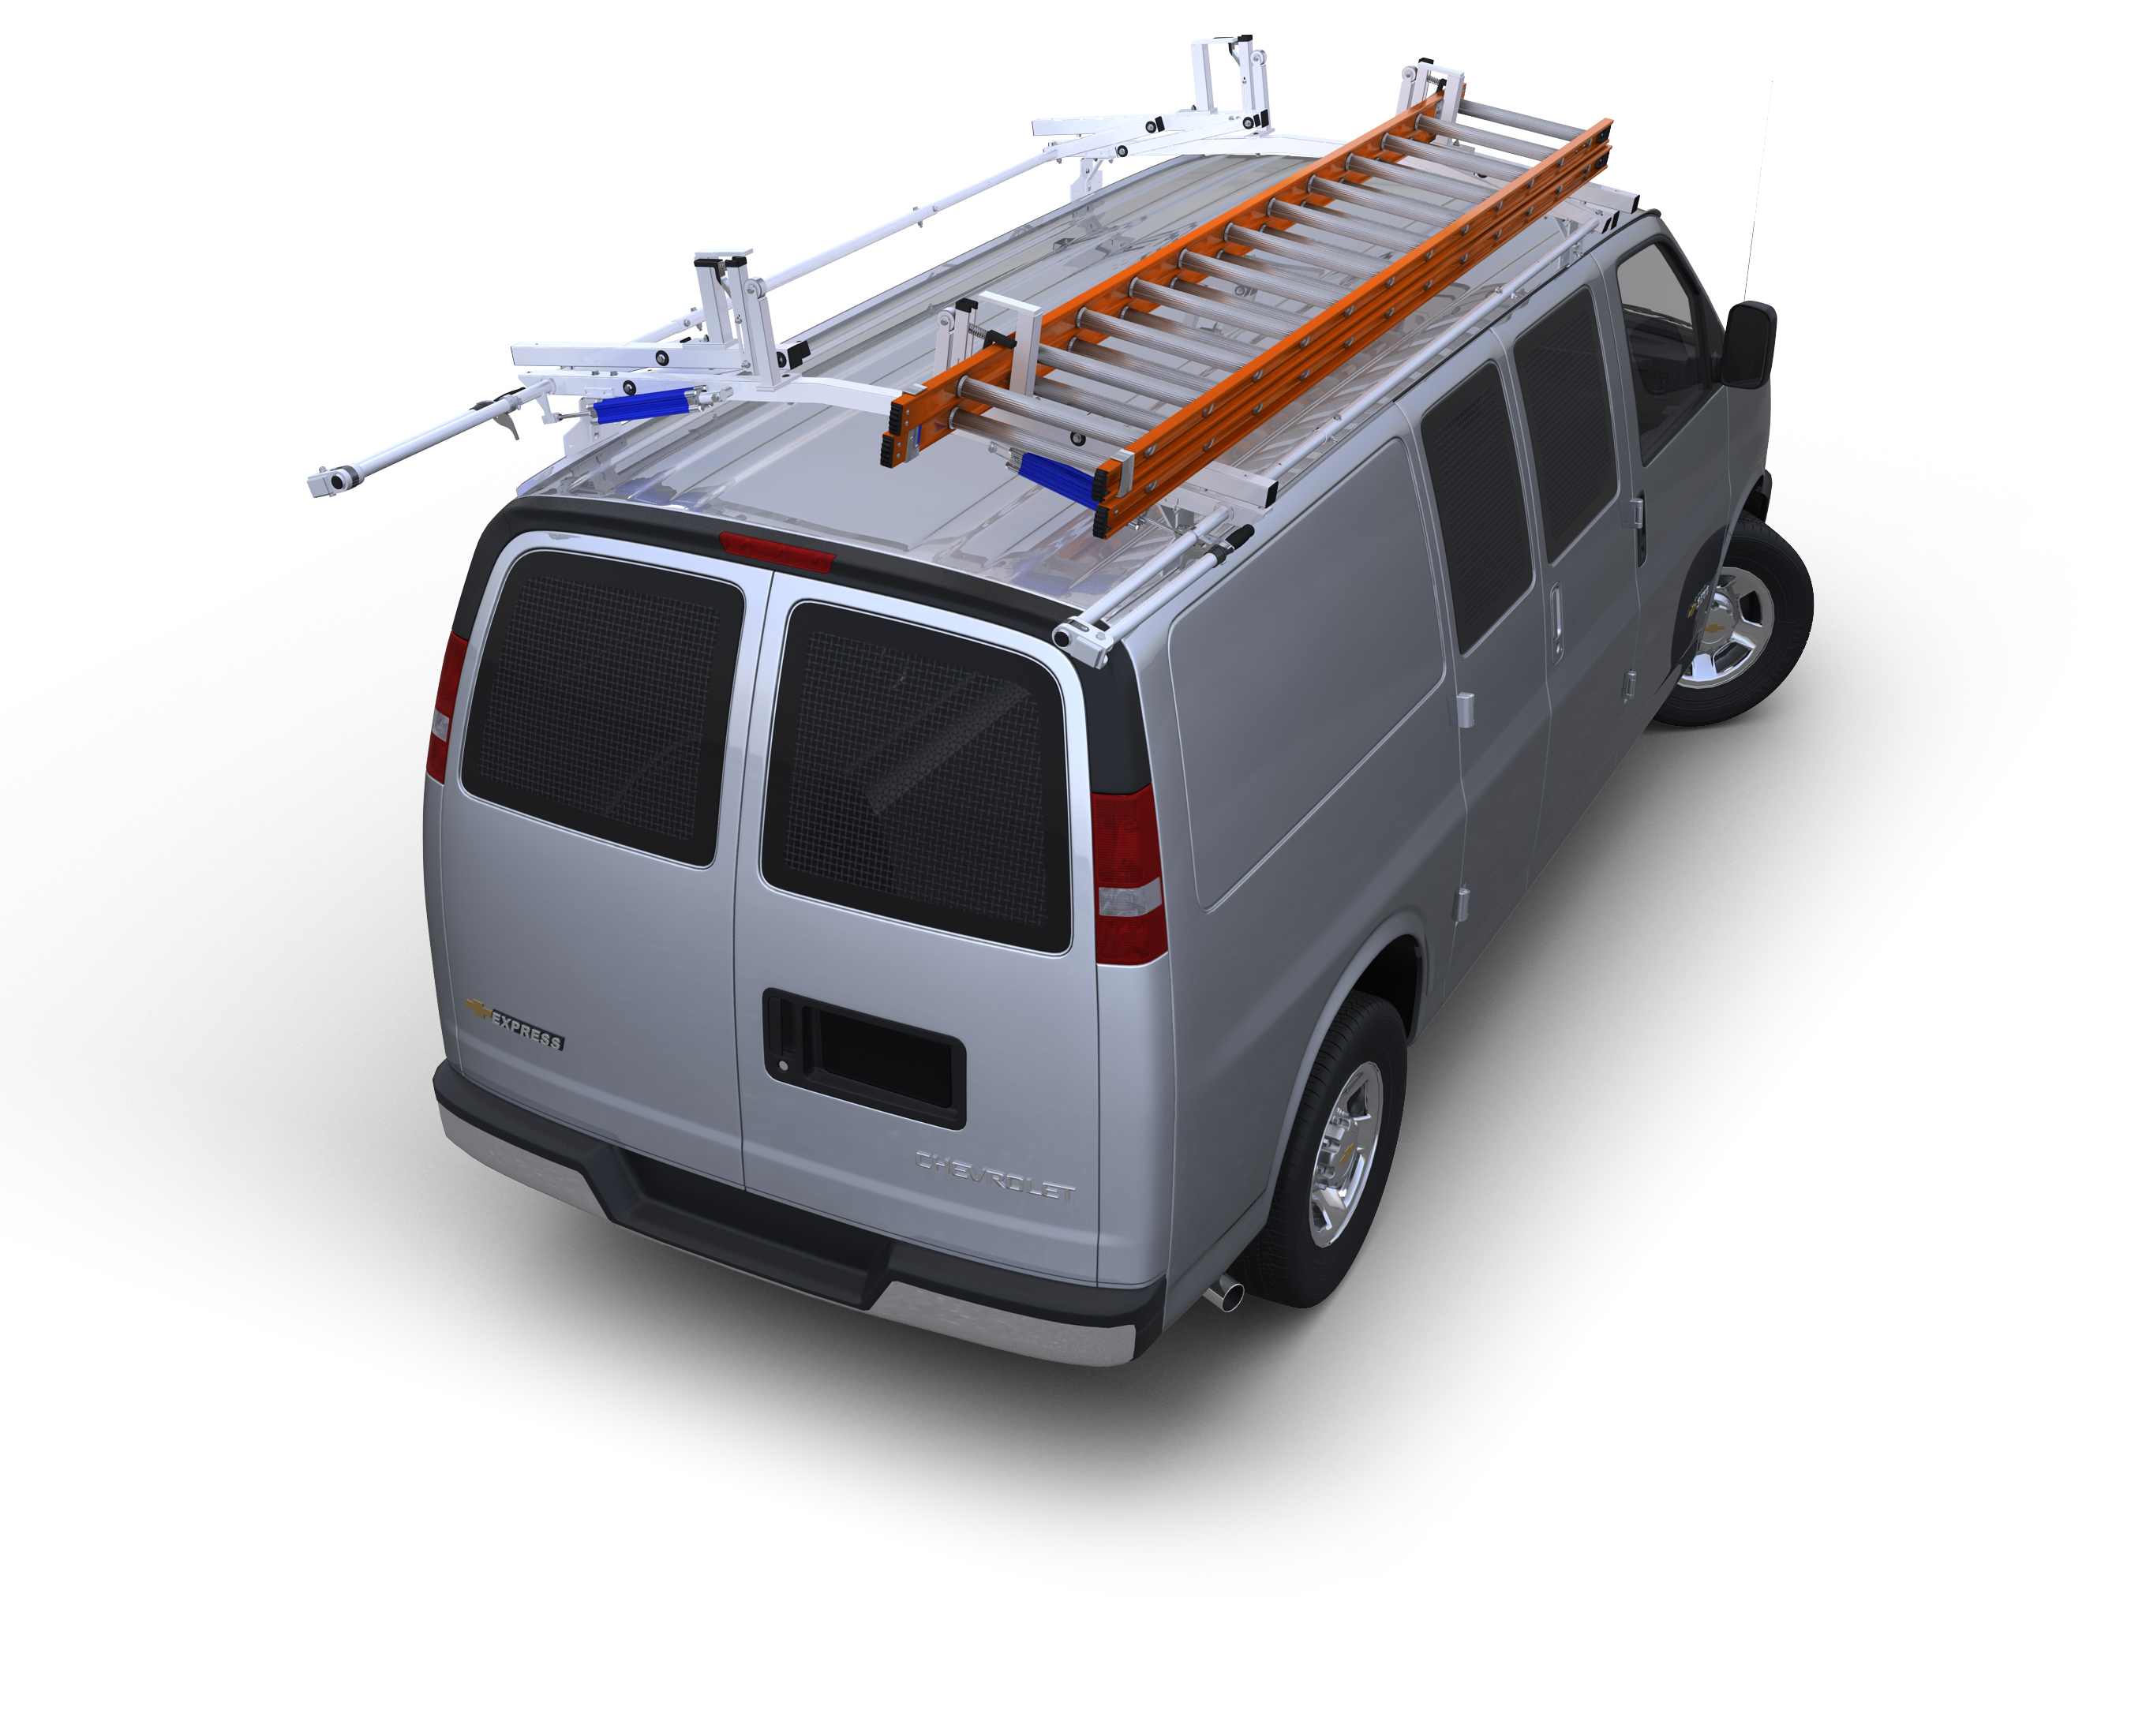 Enclosed Trailer Shelving >> High-Capacity Shelving for High Roof Vans, Step Vans or ...